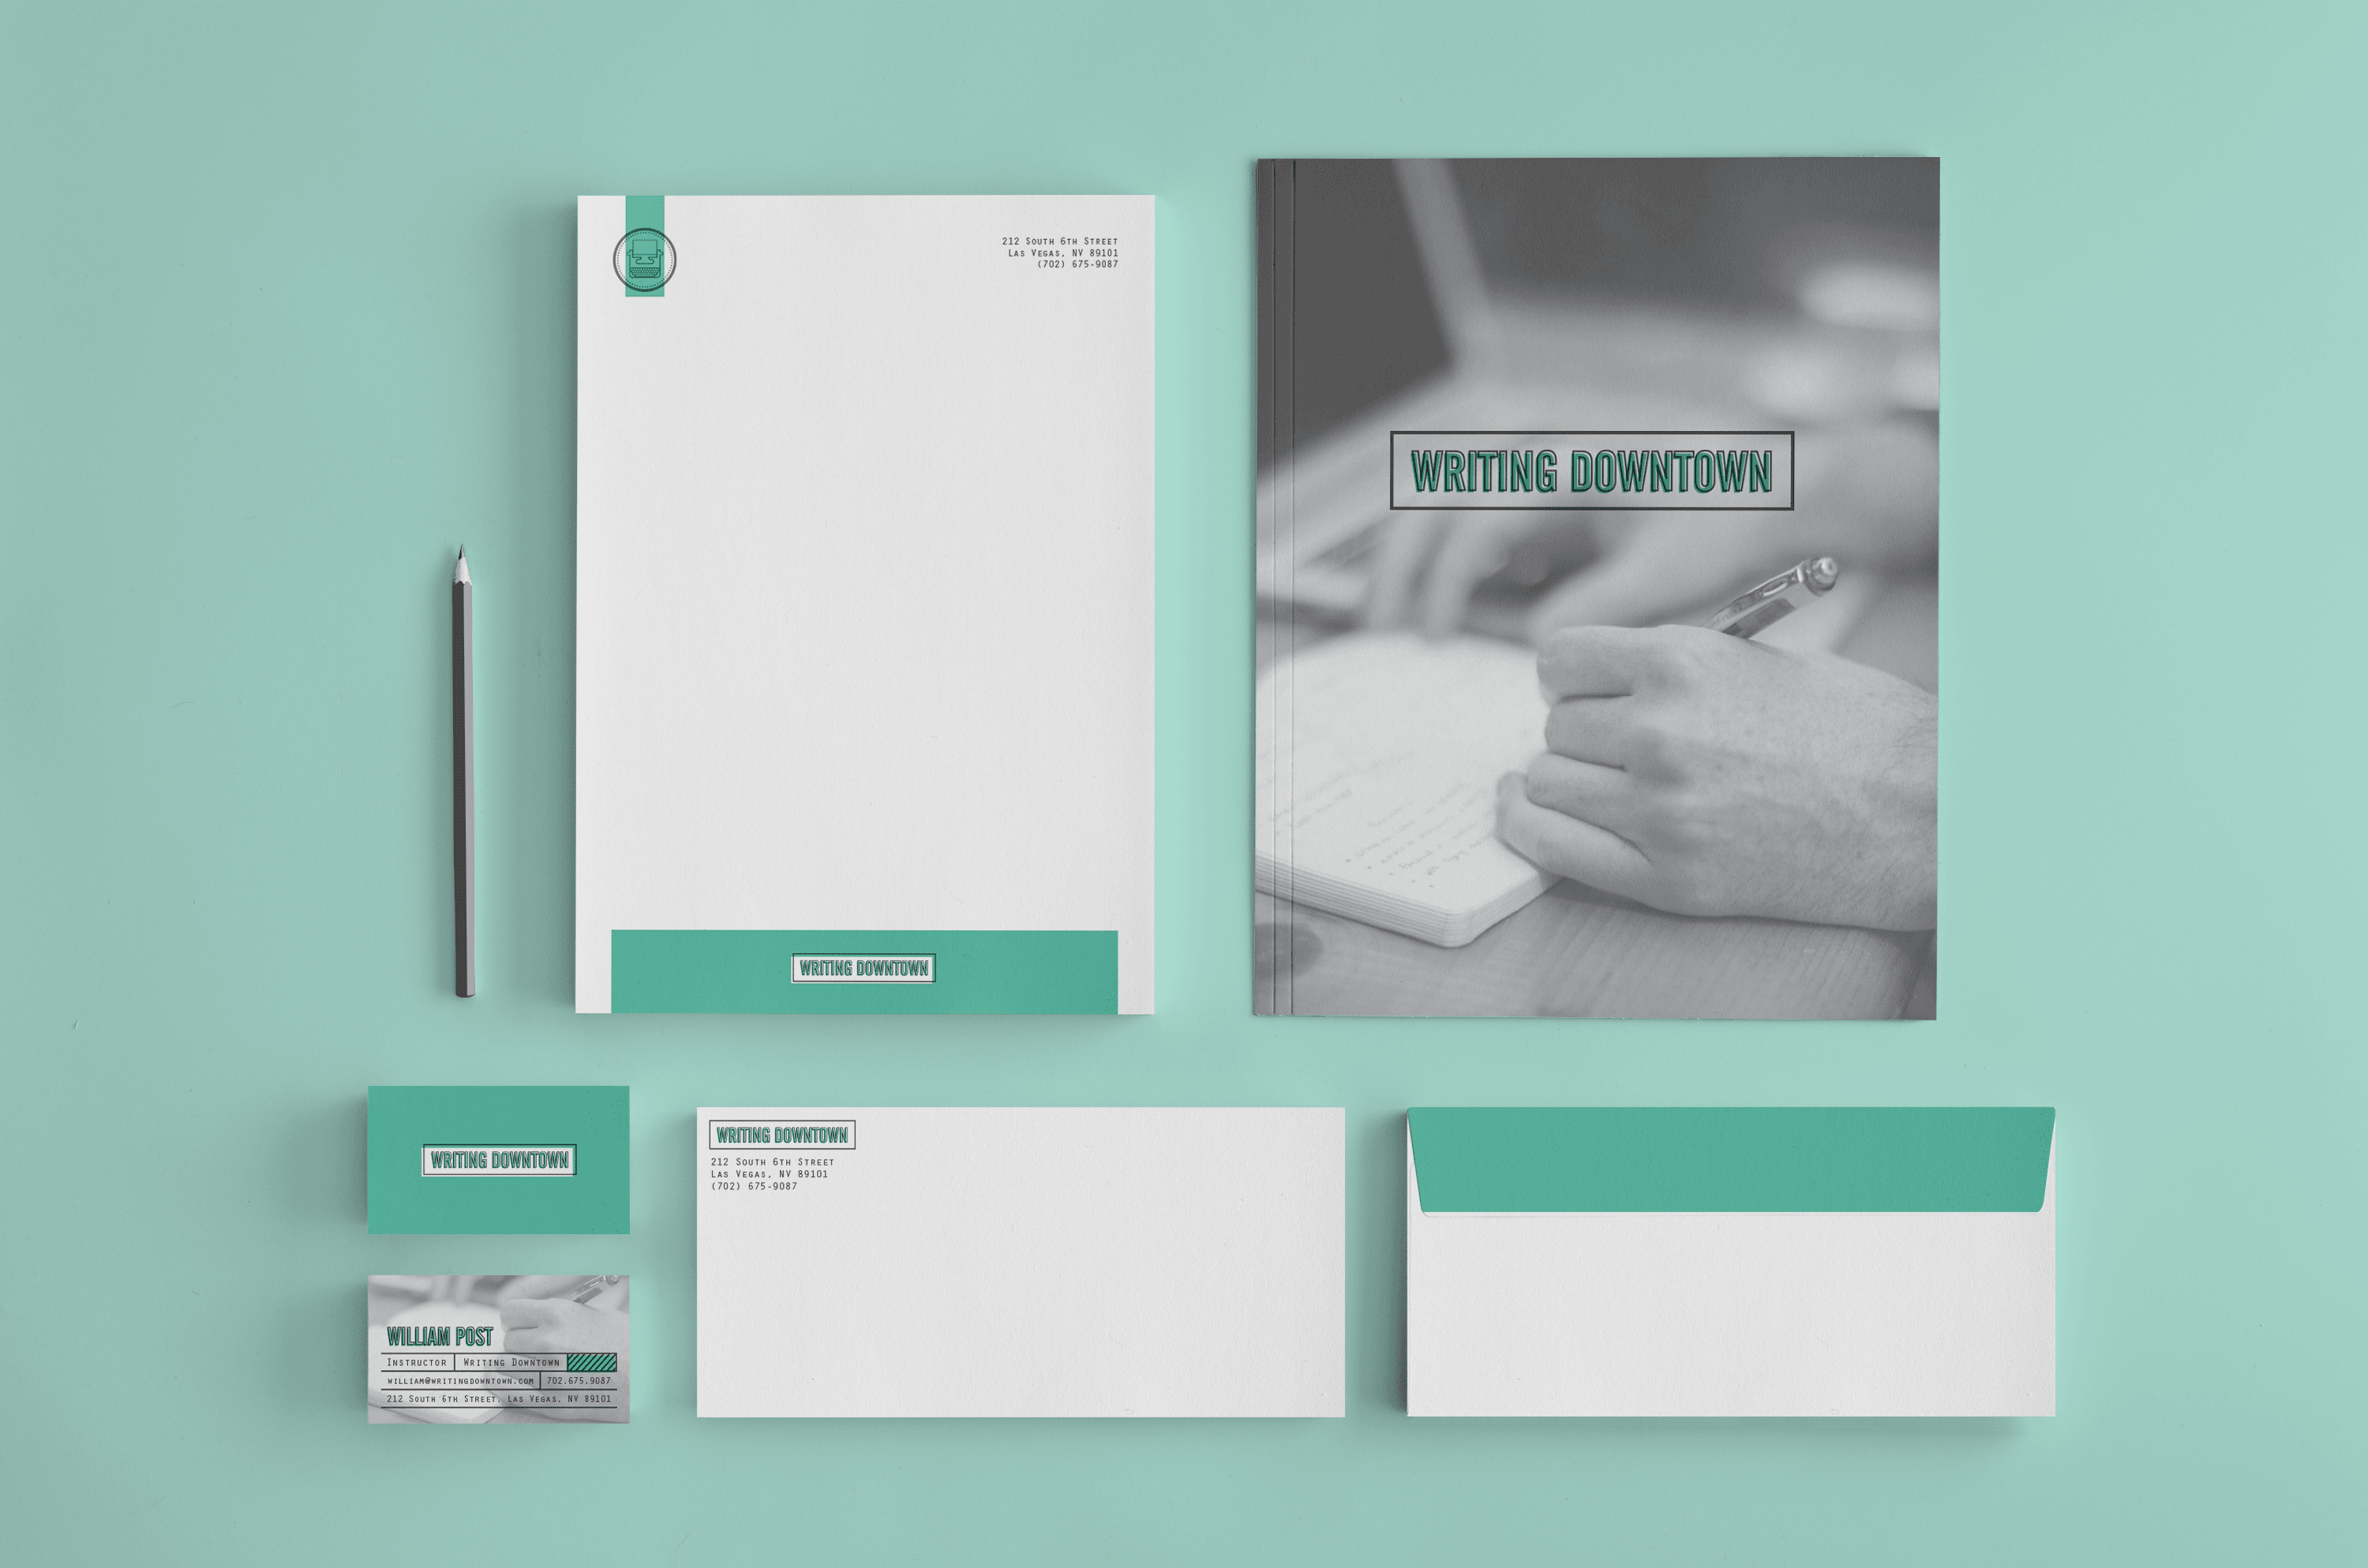 choosing one identifying color as an accent to brighten up a design can change the whole mood of a letterhead here a minty turquoise gives